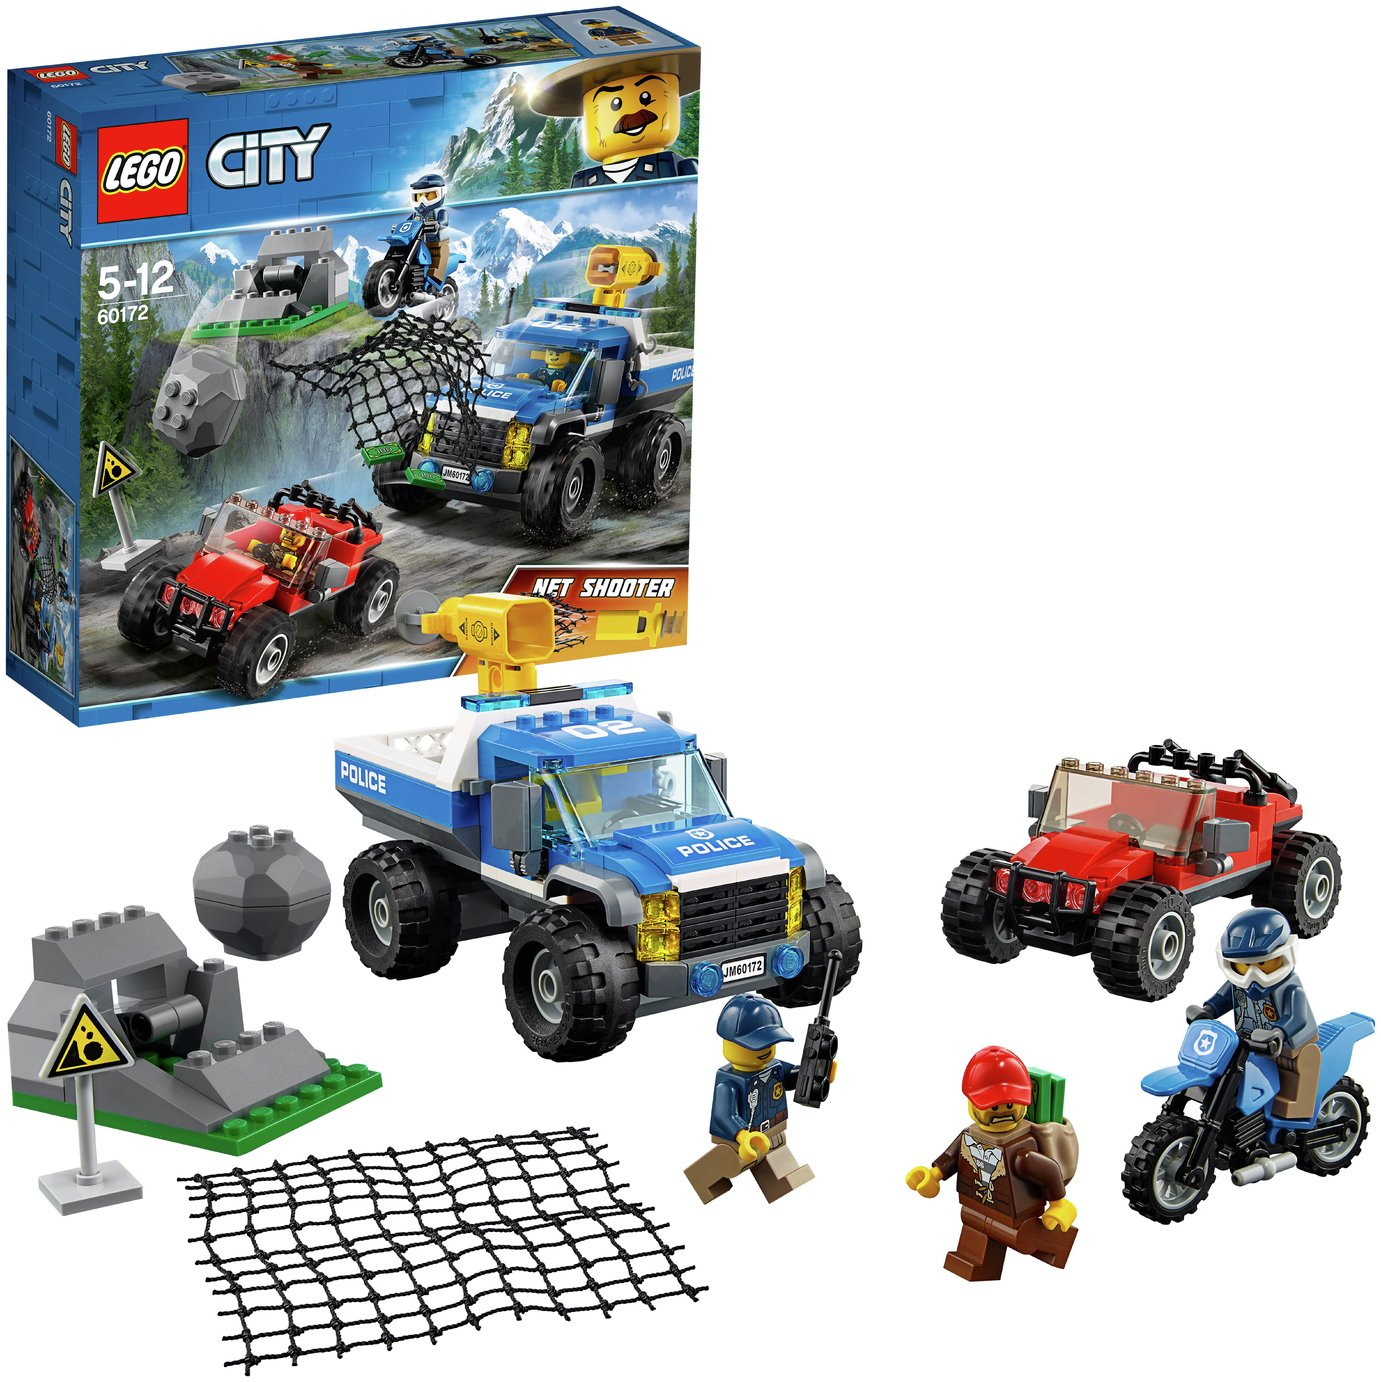 LEGO City Police Dirt Road Pursuit Toy Car - 60172